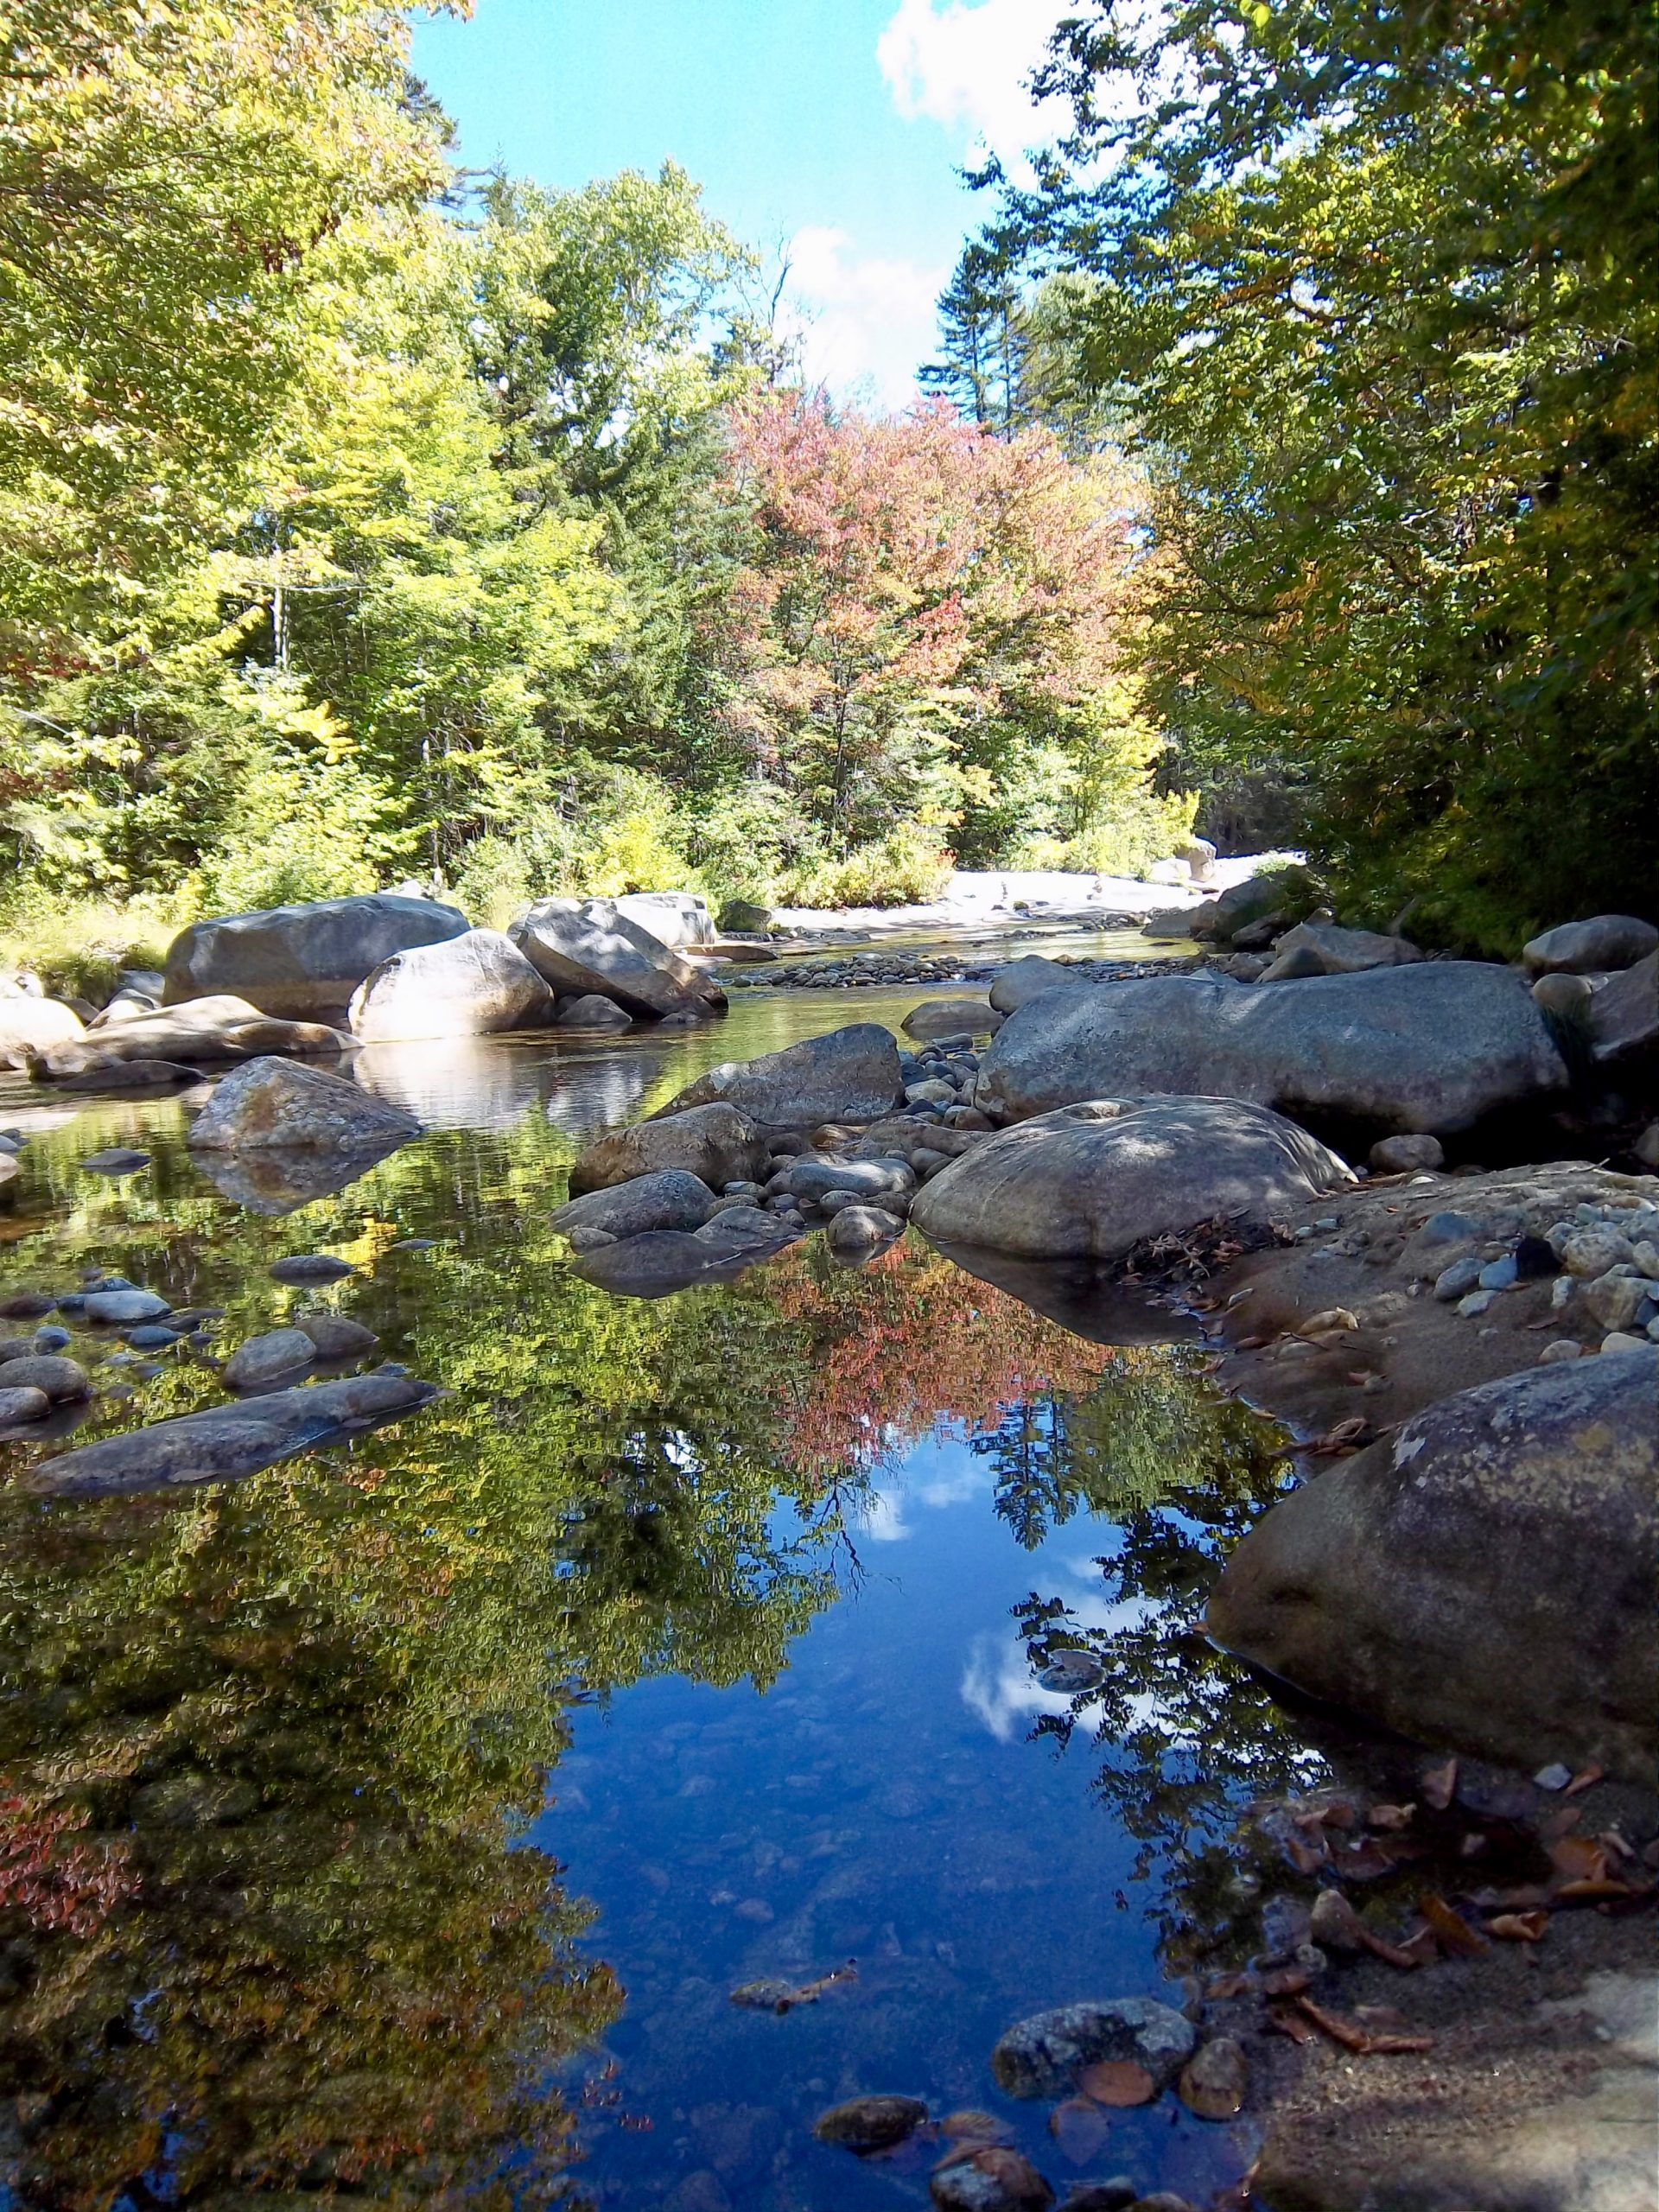 Contest Entry #23 - Reflecting on Fall - Blue sky and fall foliage reflecting on still river water surrounded by boulders with trees in the background